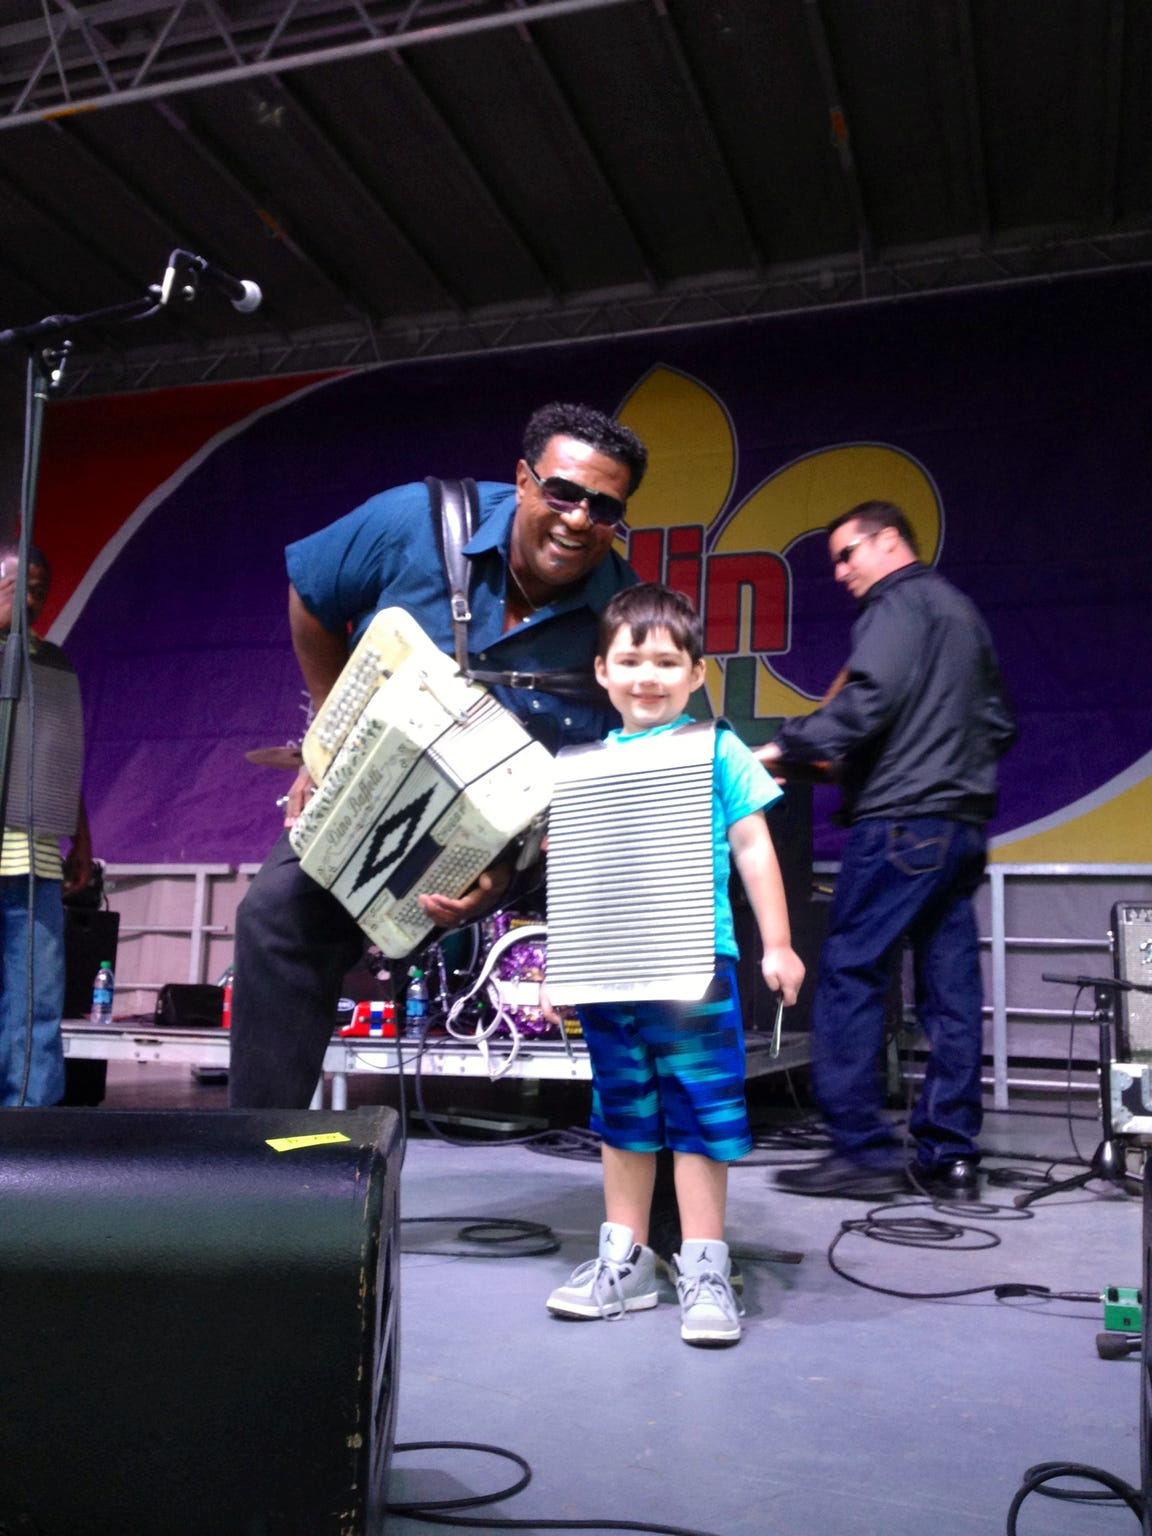 My son, Dylan, onstage with Chubby Carrier at the Scott